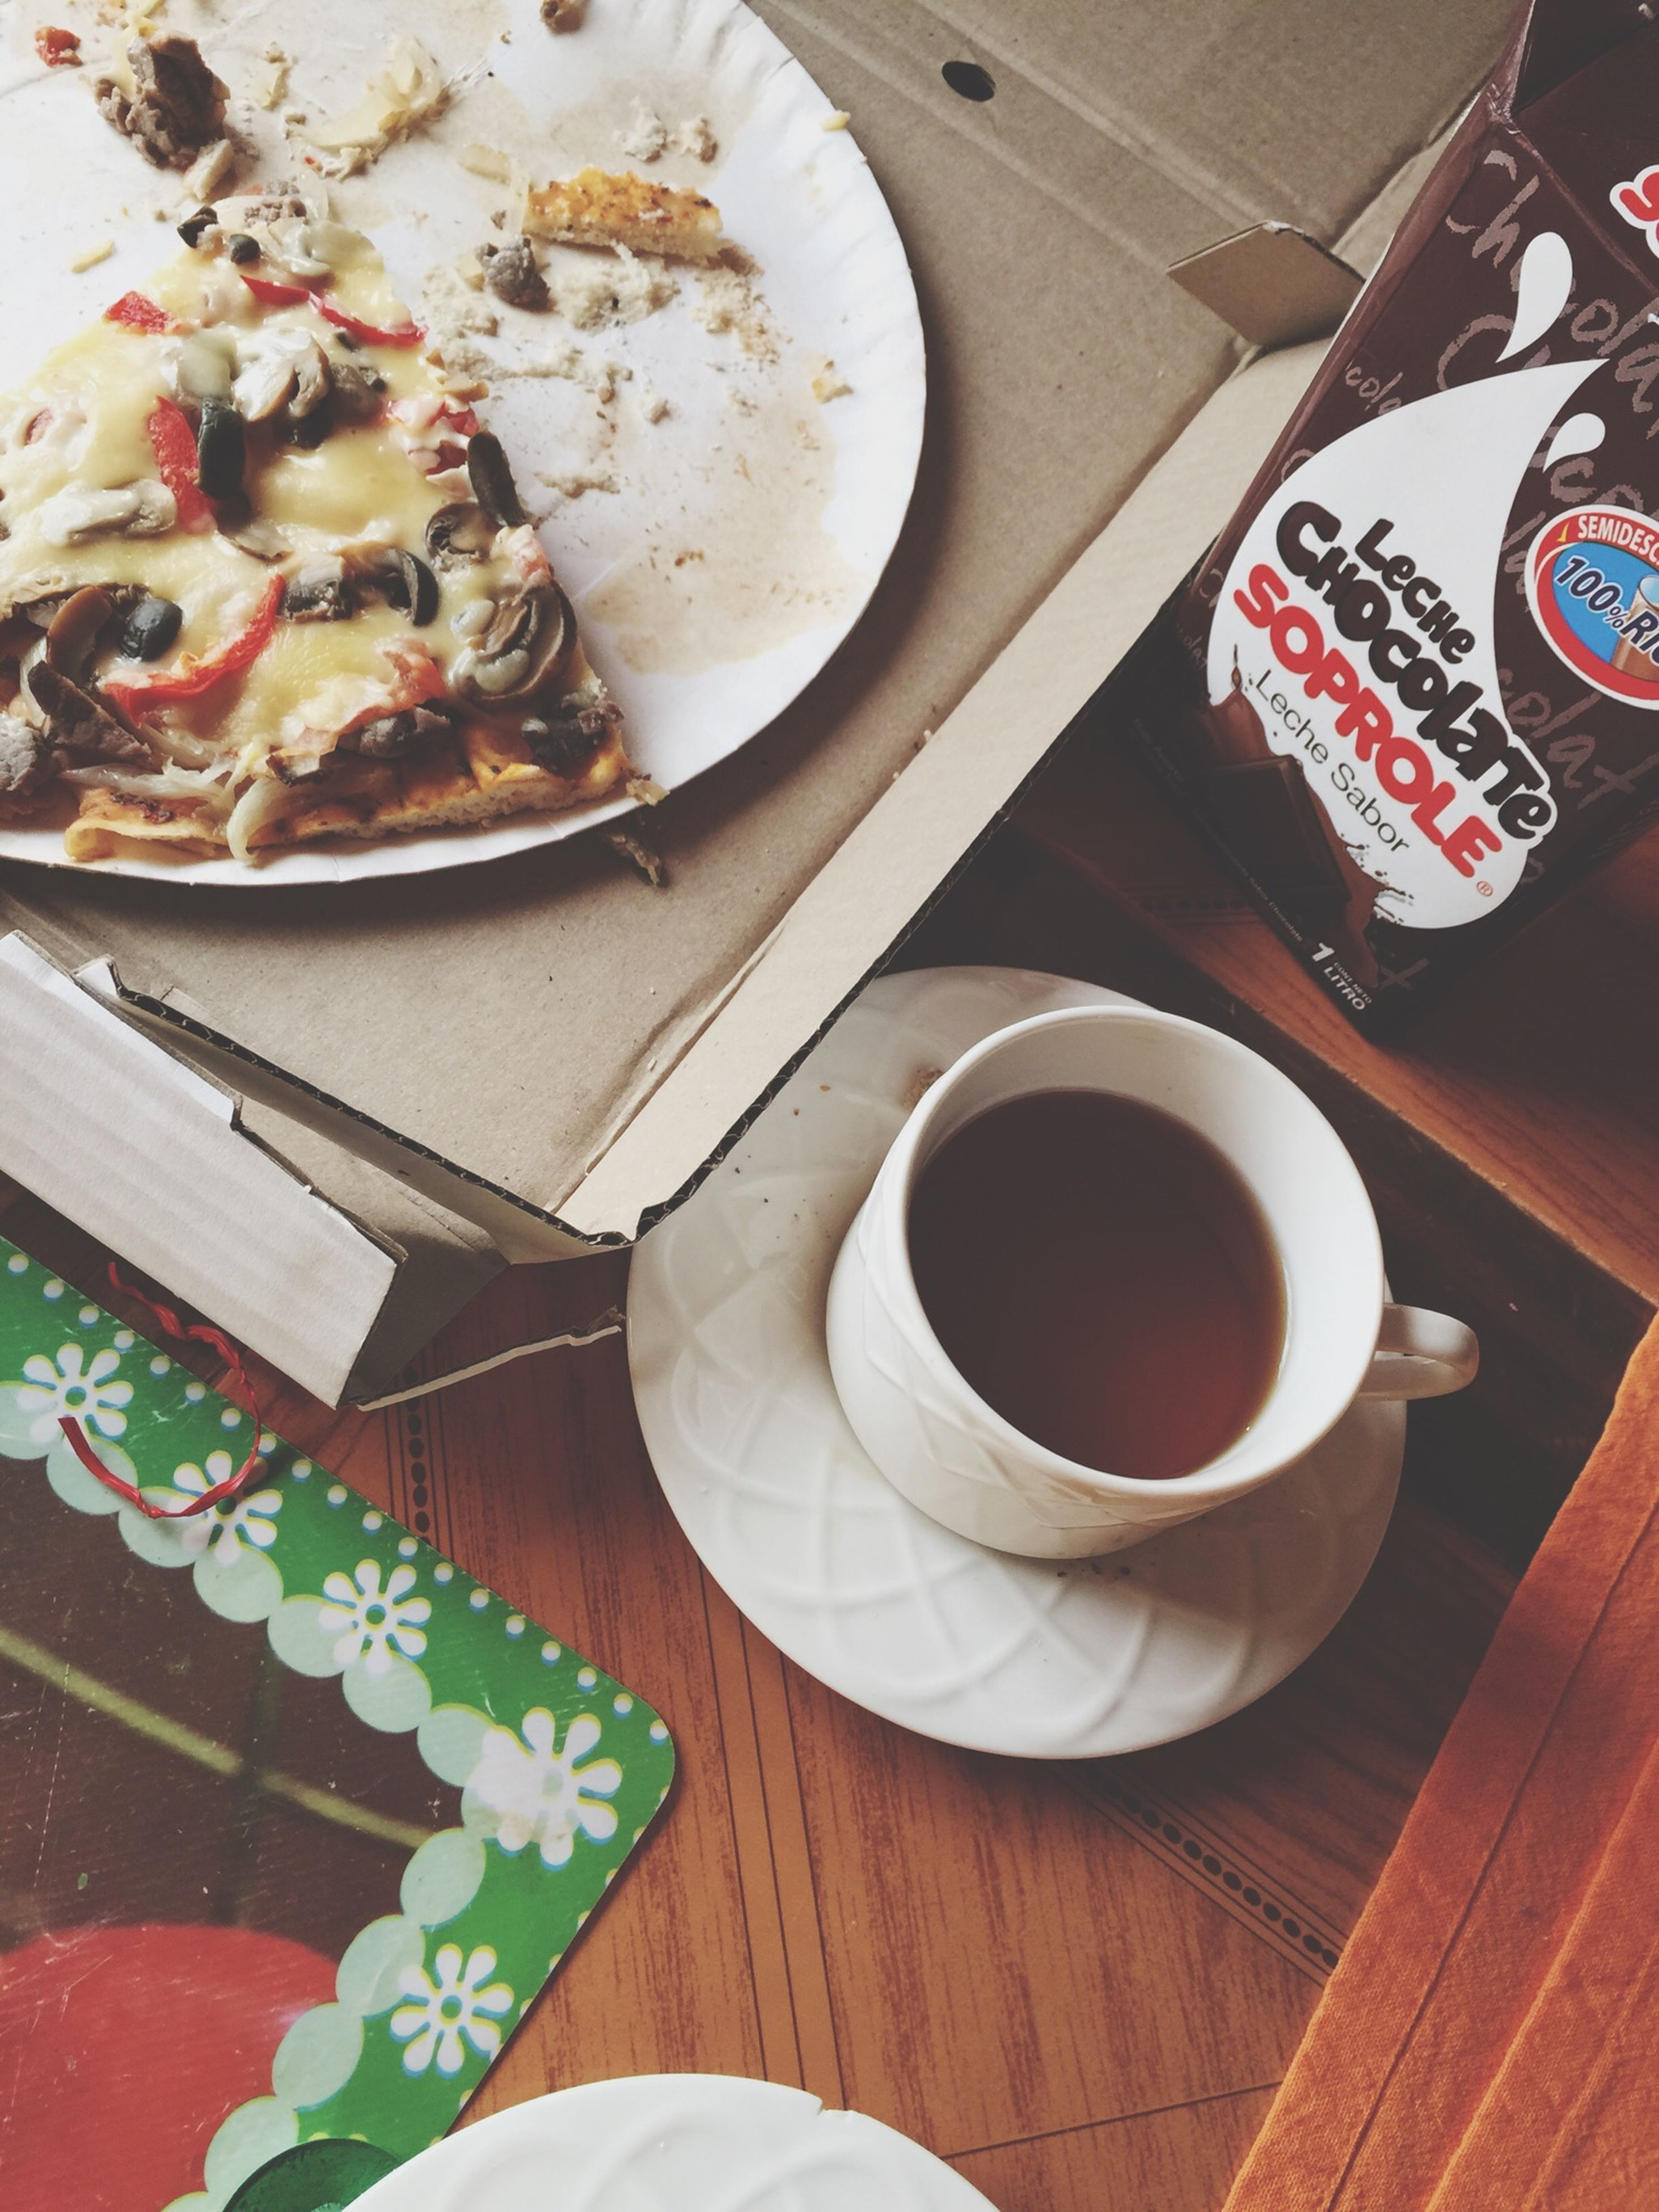 indoors, food and drink, table, coffee cup, drink, refreshment, coffee - drink, freshness, high angle view, saucer, still life, cup, plate, coffee, directly above, food, spoon, sweet food, ready-to-eat, breakfast